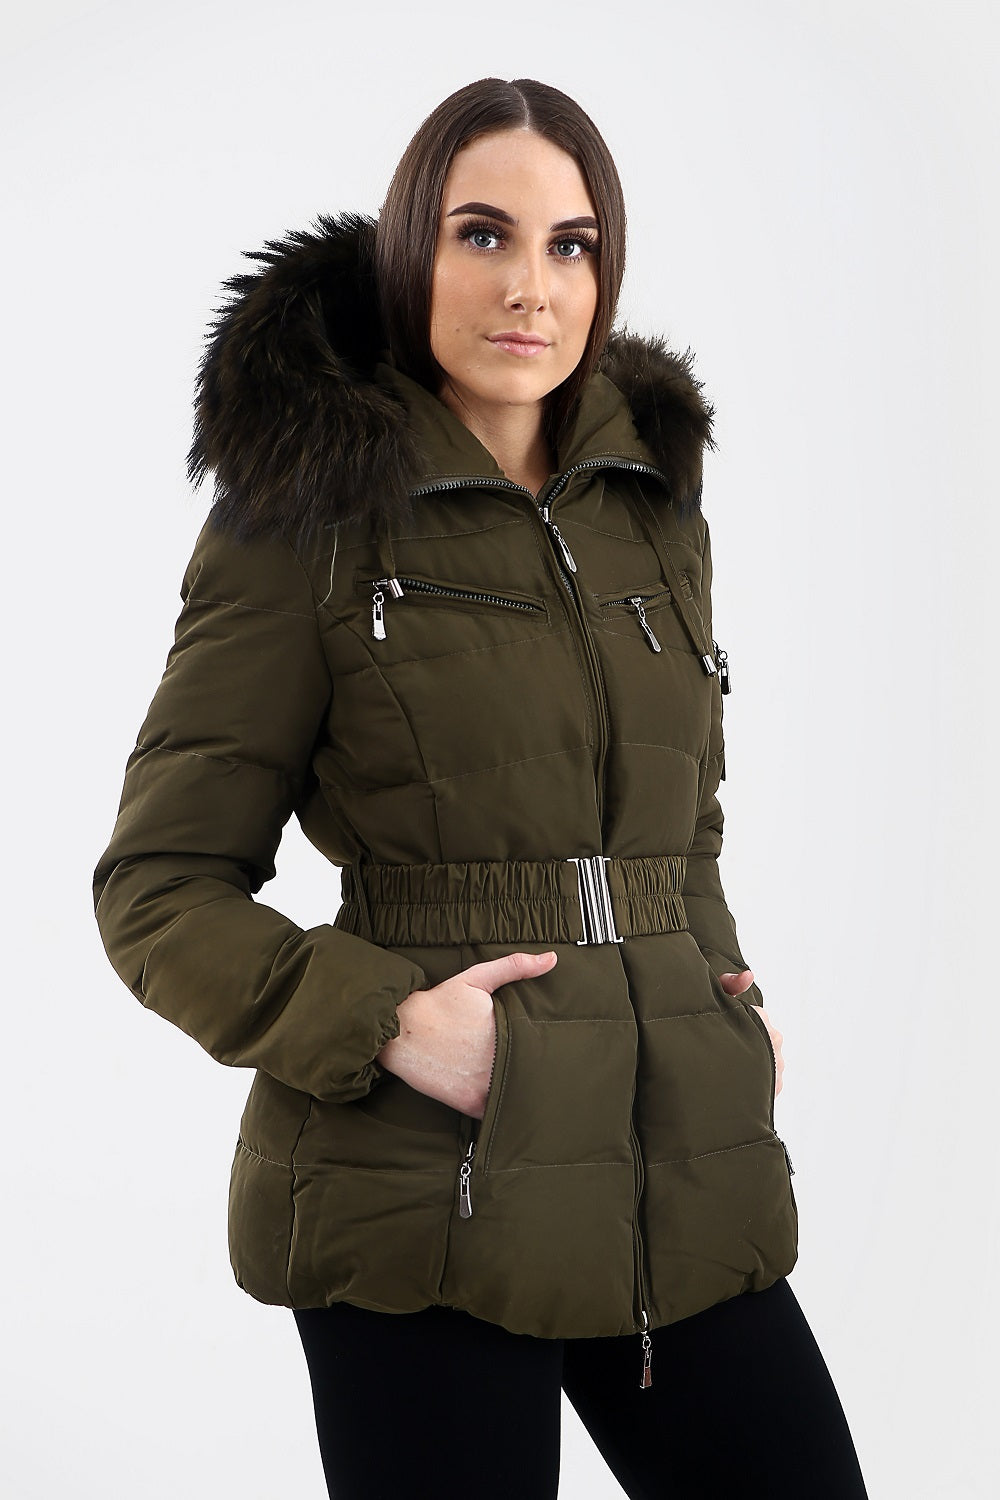 Khaki Green Quilted Green Natural Fur Hood Puffer Jacket - Aria